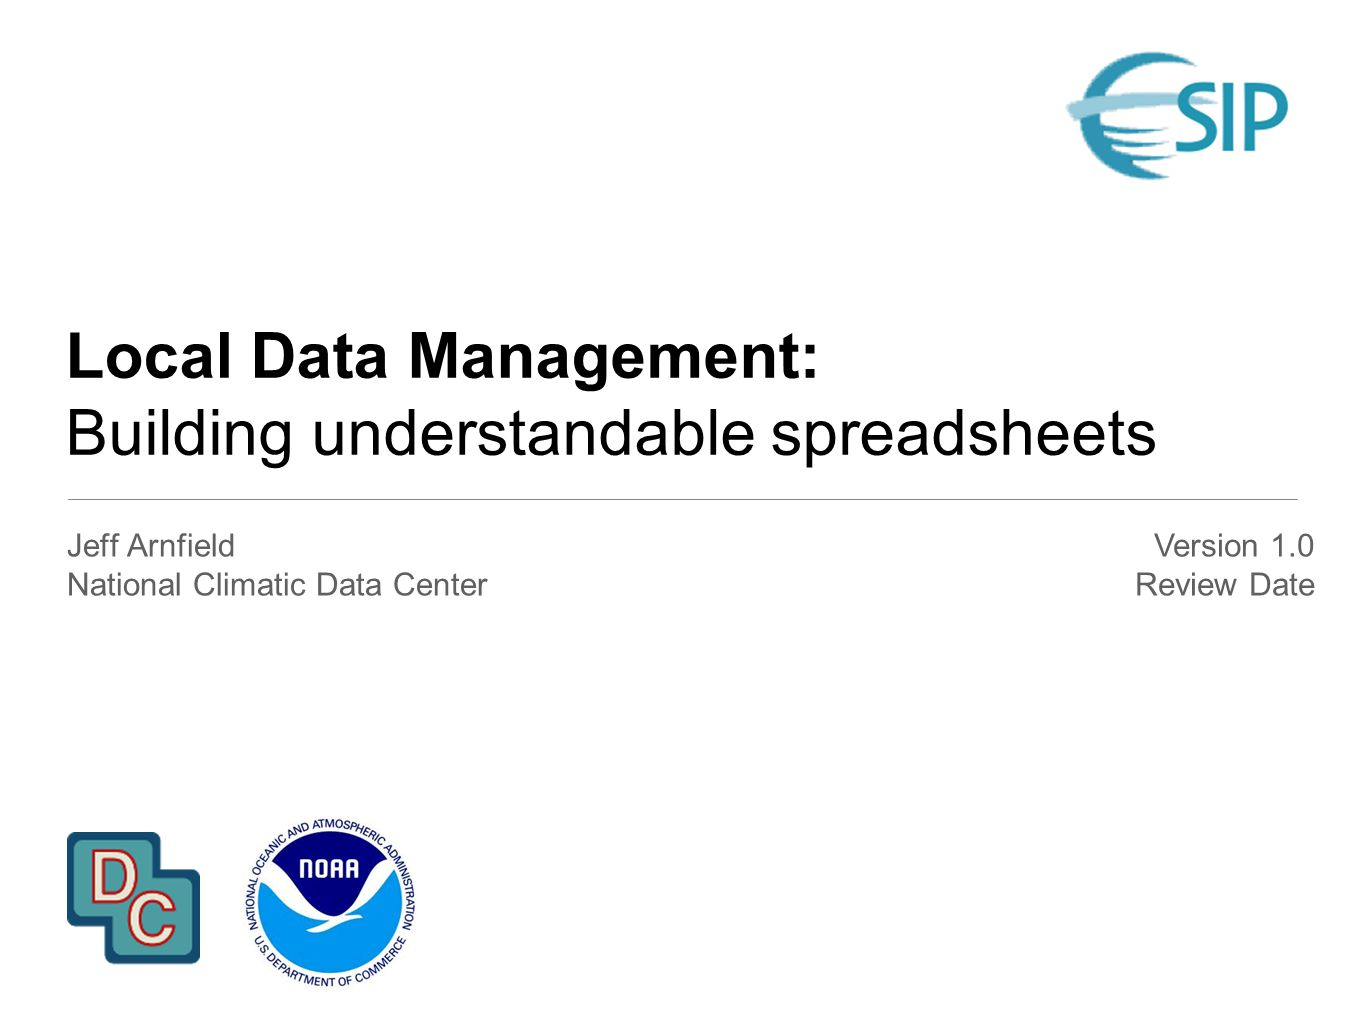 Data Formats: Building understandable spreadsheets; Version 1.0, Reviewed --/--/---- Overview Spreadsheets are amazingly flexible, and are commonly used for data collection, analysis and management Spreadsheets are seldom self-documenting, and seldom well-documented Subtle (and not so subtle) errors are easily introduced during entry, manipulation and analysis Spreadsheet conventions – often ad hoc and evolutionary – may change or be applied inconsistently Spreadsheet file formats are proprietary and thus generally unacceptable as long term archival purposes